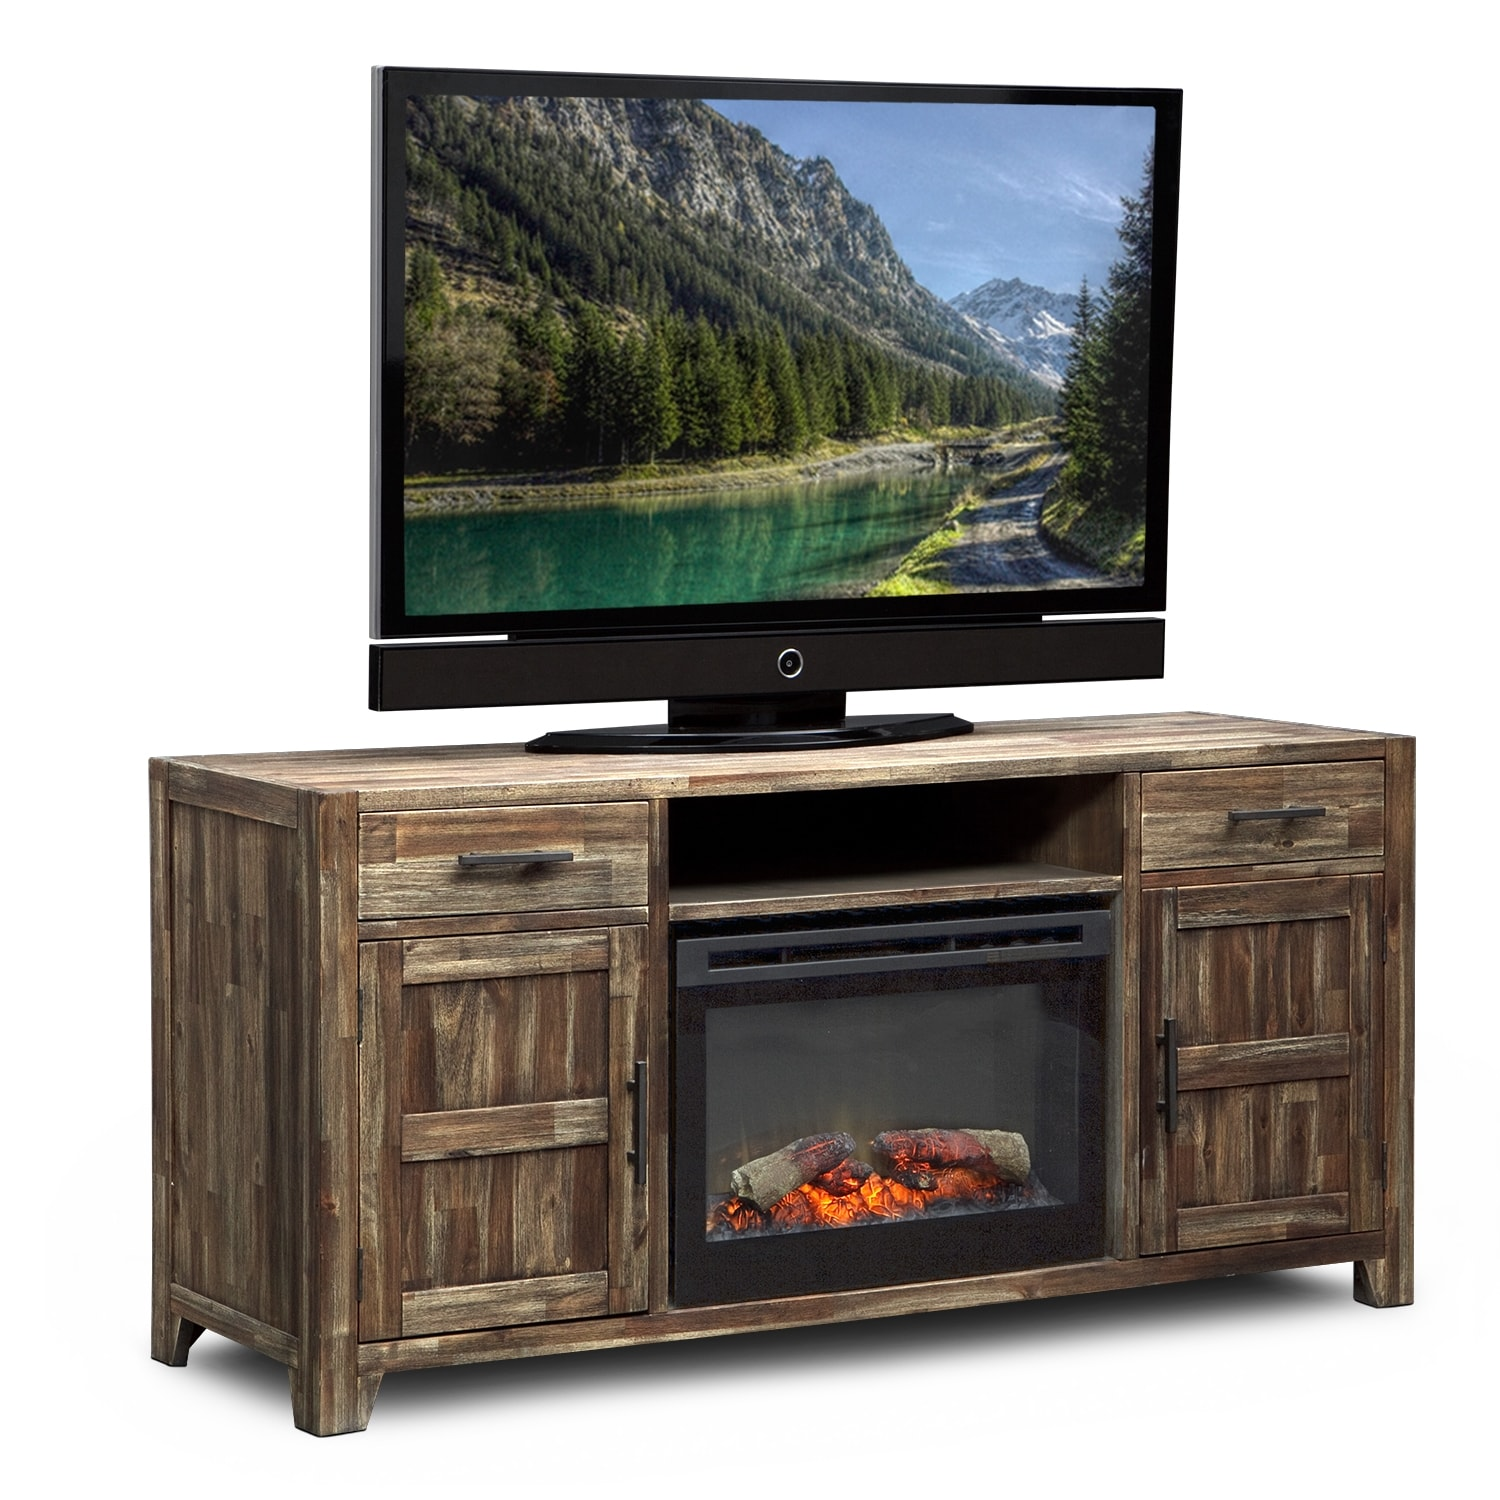 Brentwood Fireplace TV Stand in Traditional Insert - Medium Brown